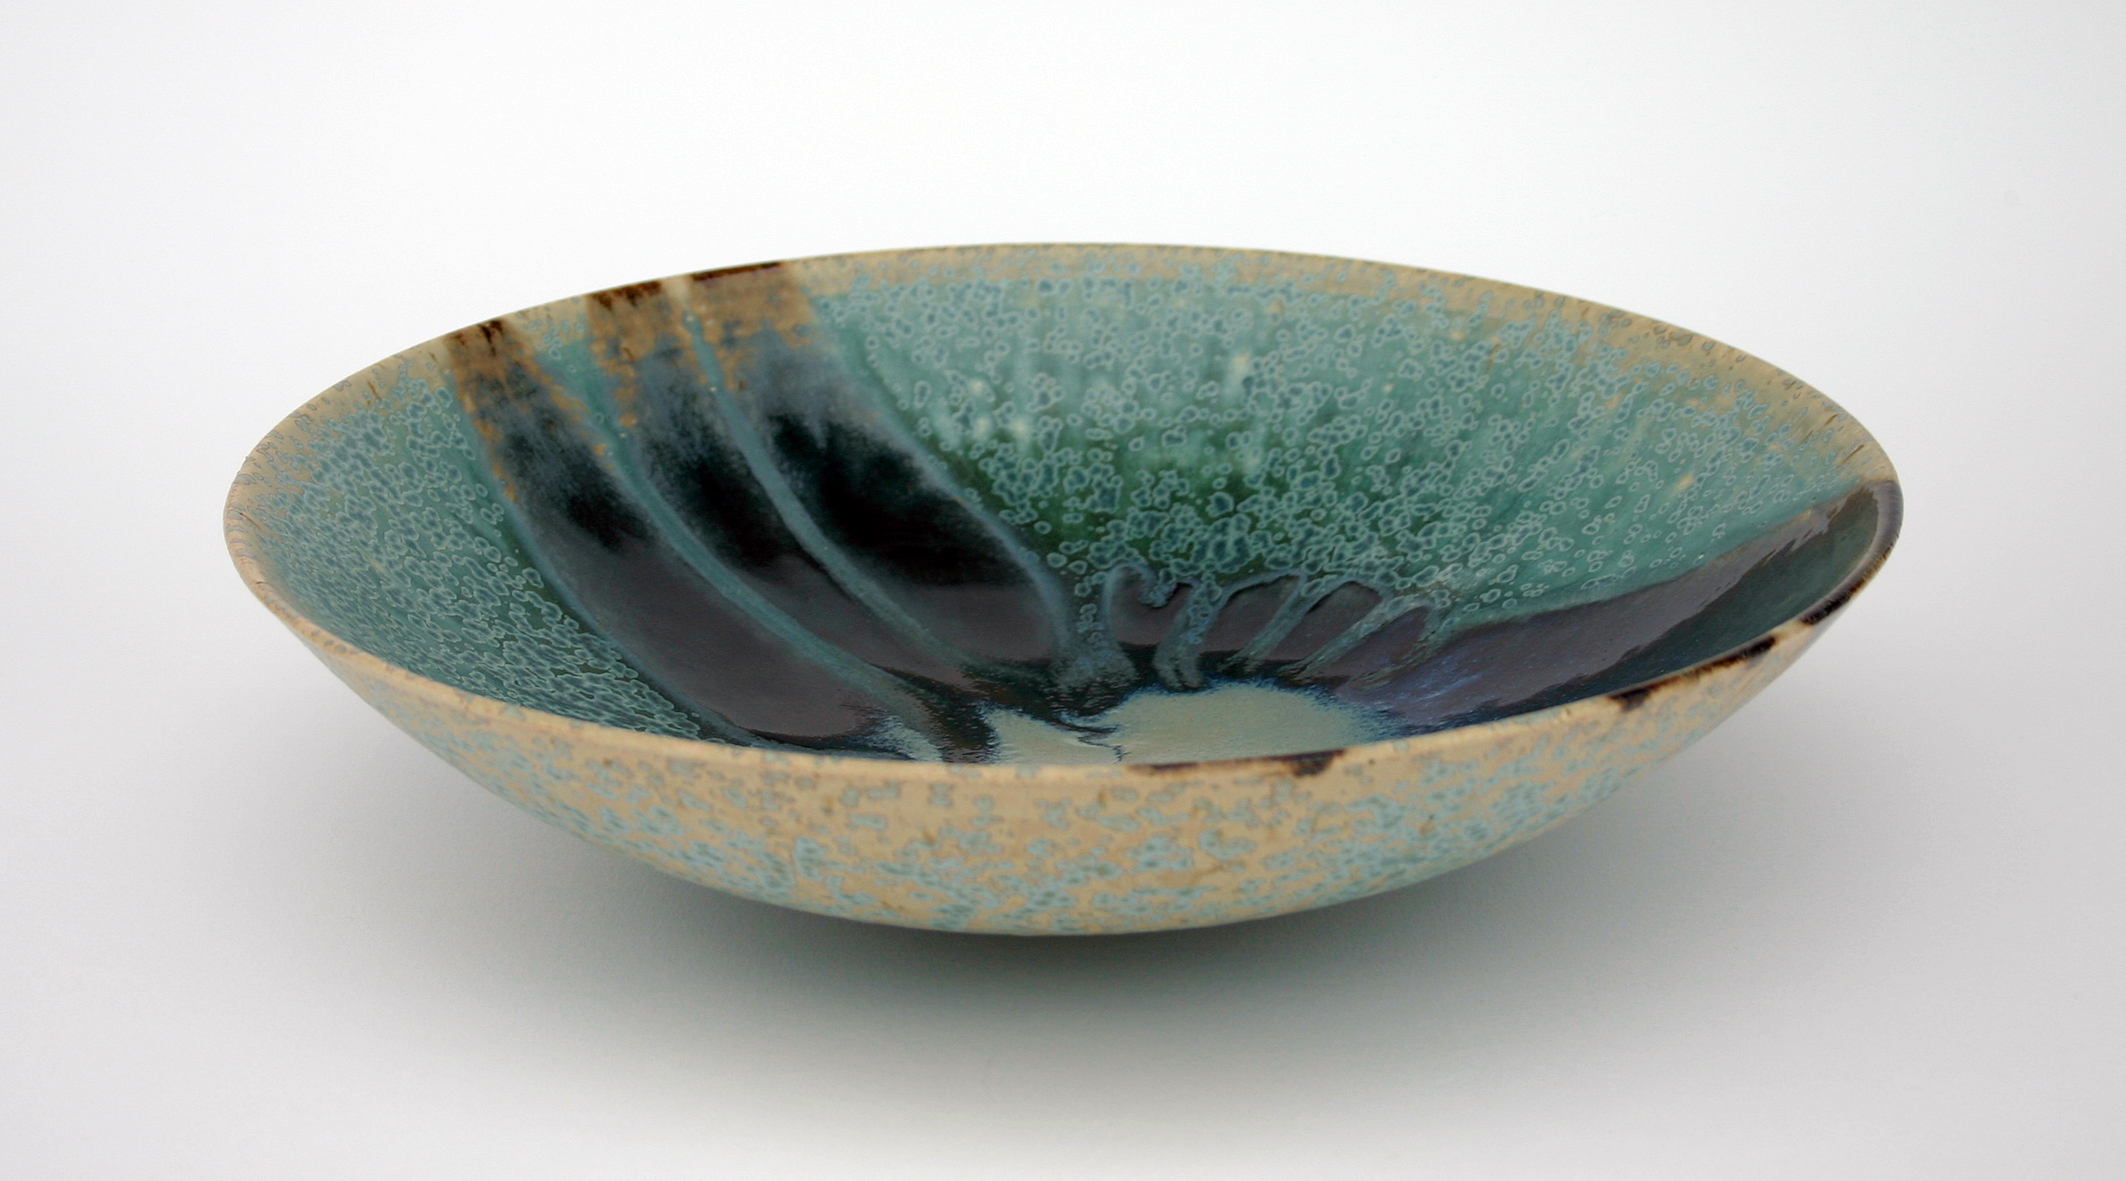 bowl galaxy chun stripes.jpg